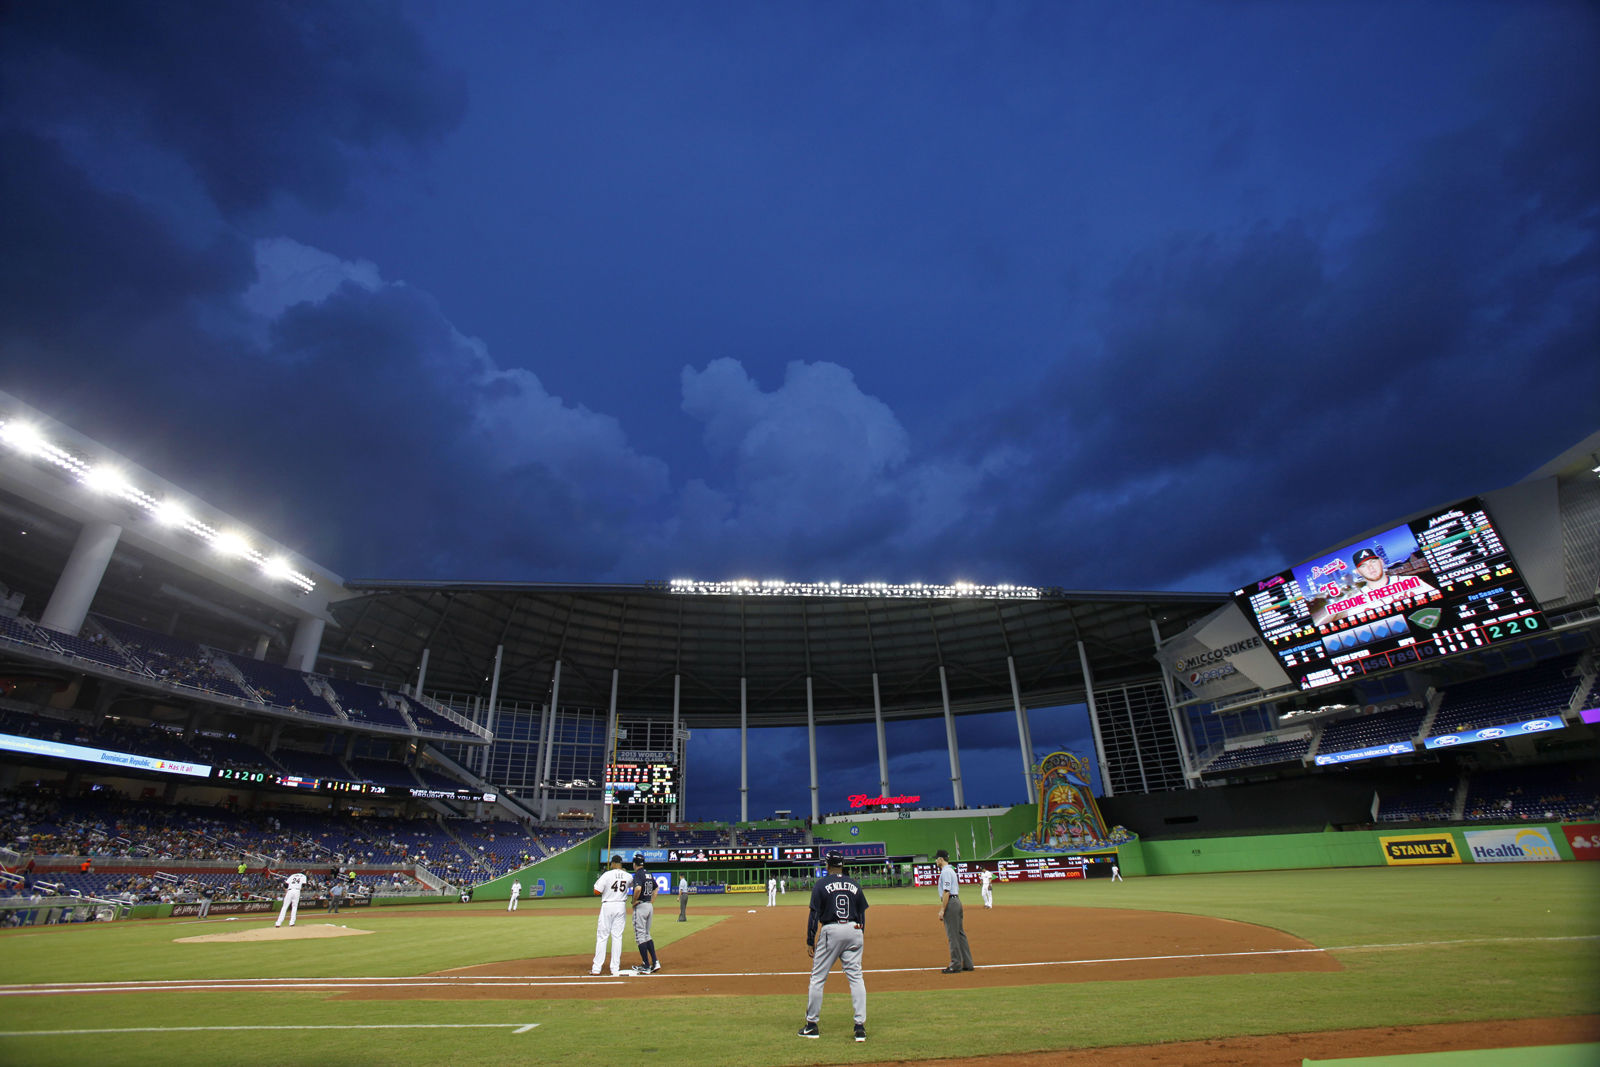 Marlins Park in Miami, home of the aforementioned Miami Marlins, is locked in a two-way tie for the most expensive hotdog in baseball, but it only comes in at No. 17 overall. The average cost of seeing the Marlins is $69.50. File. (AP Photo/Wilfredo Lee)